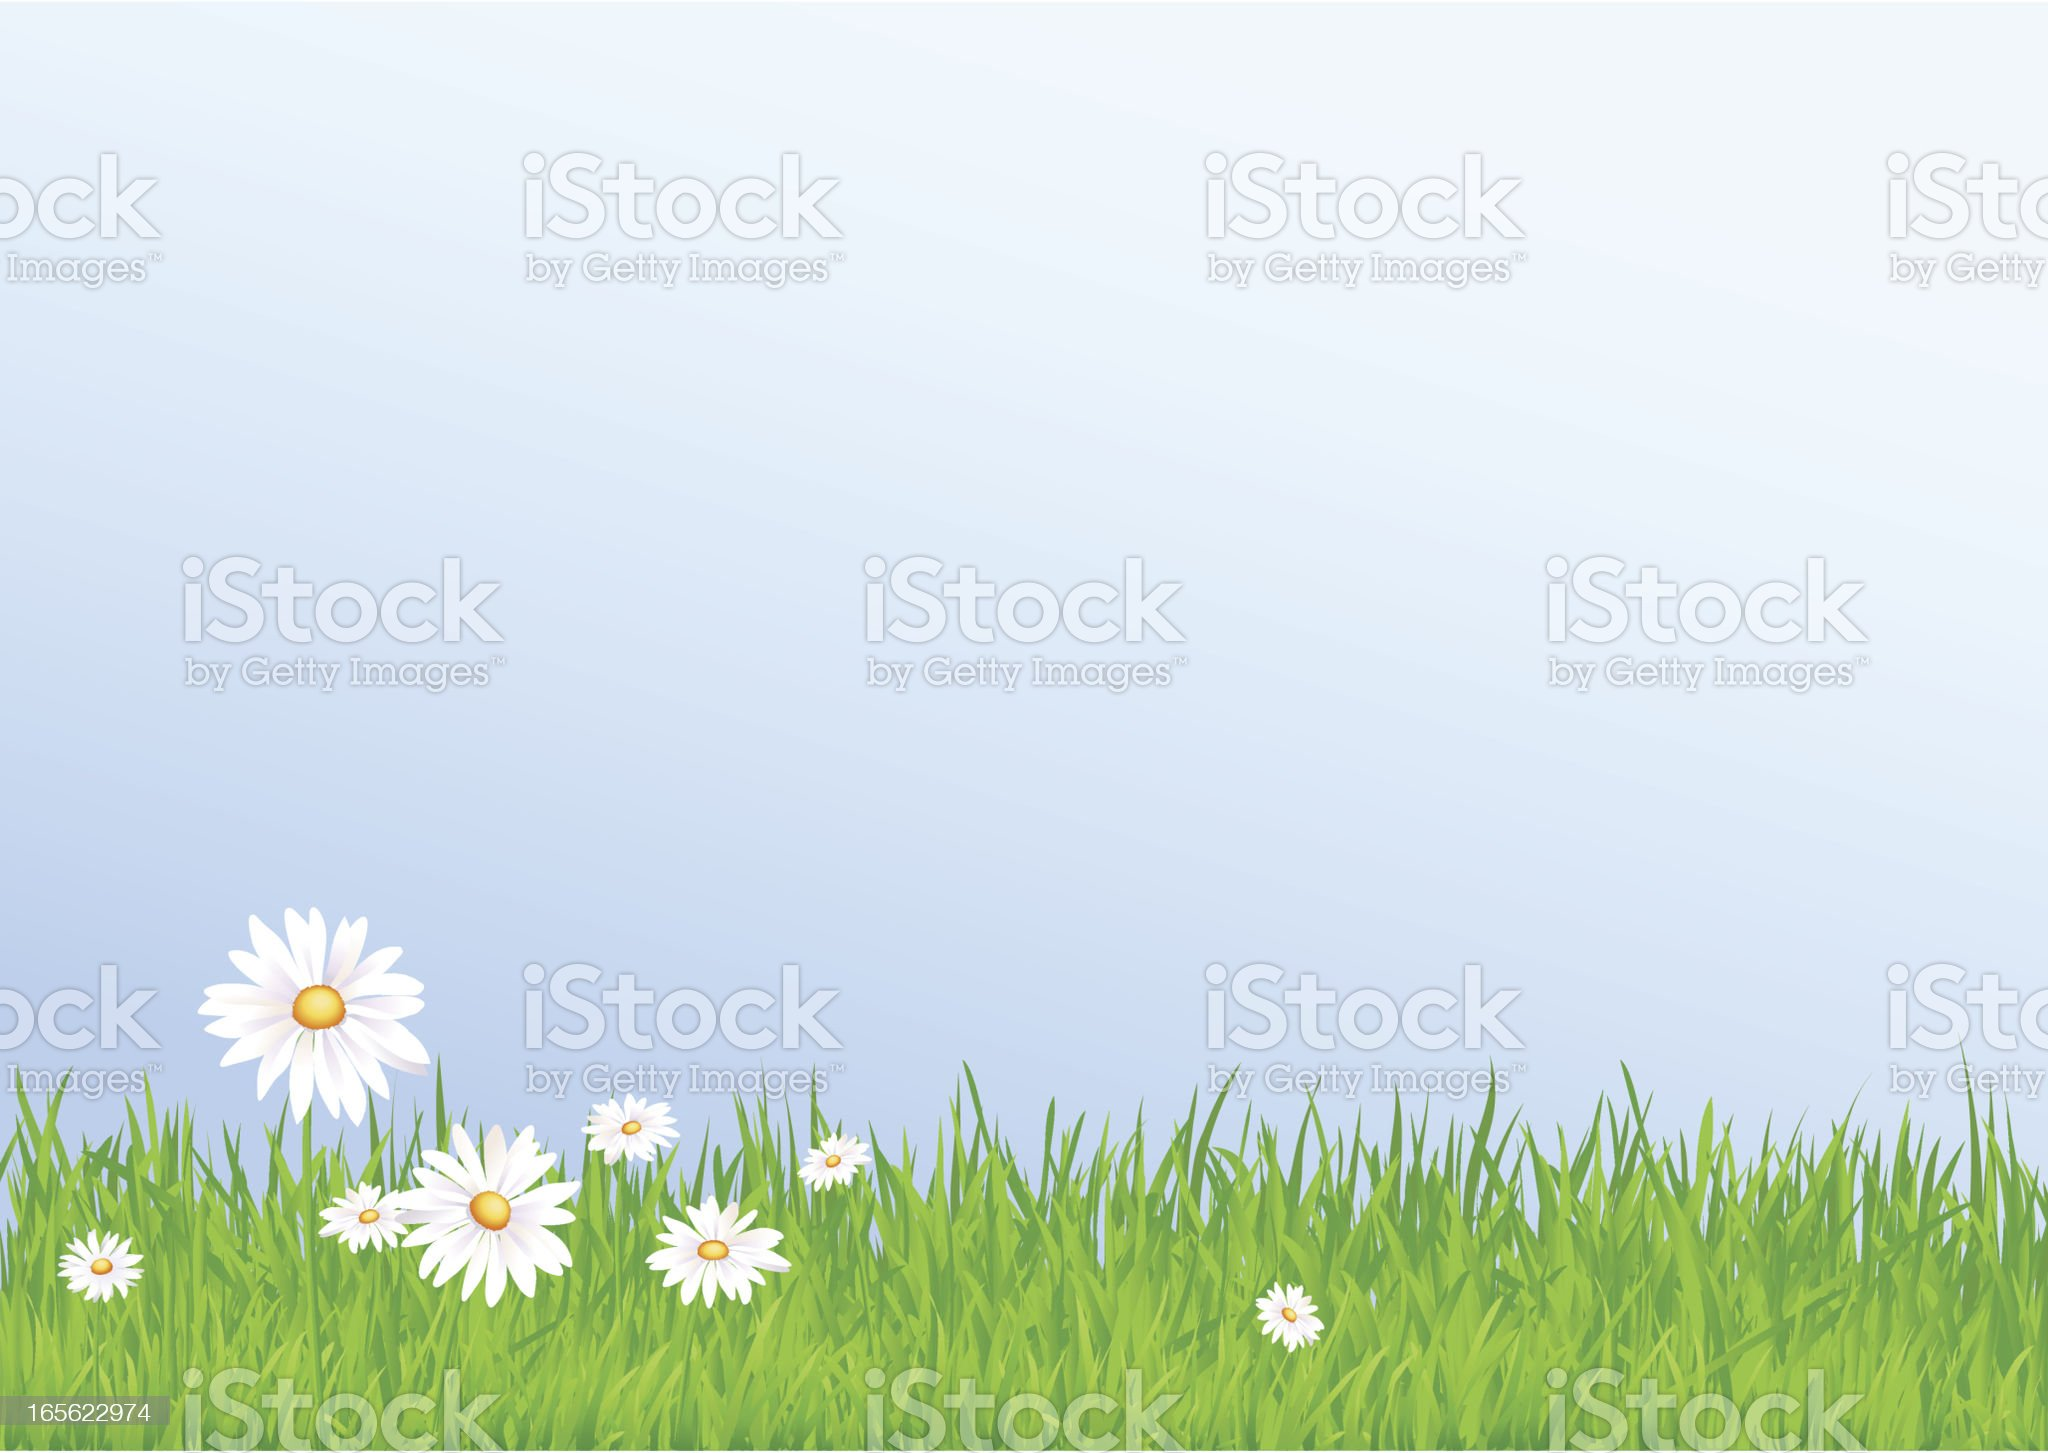 Daisy in the grassland royalty-free stock vector art